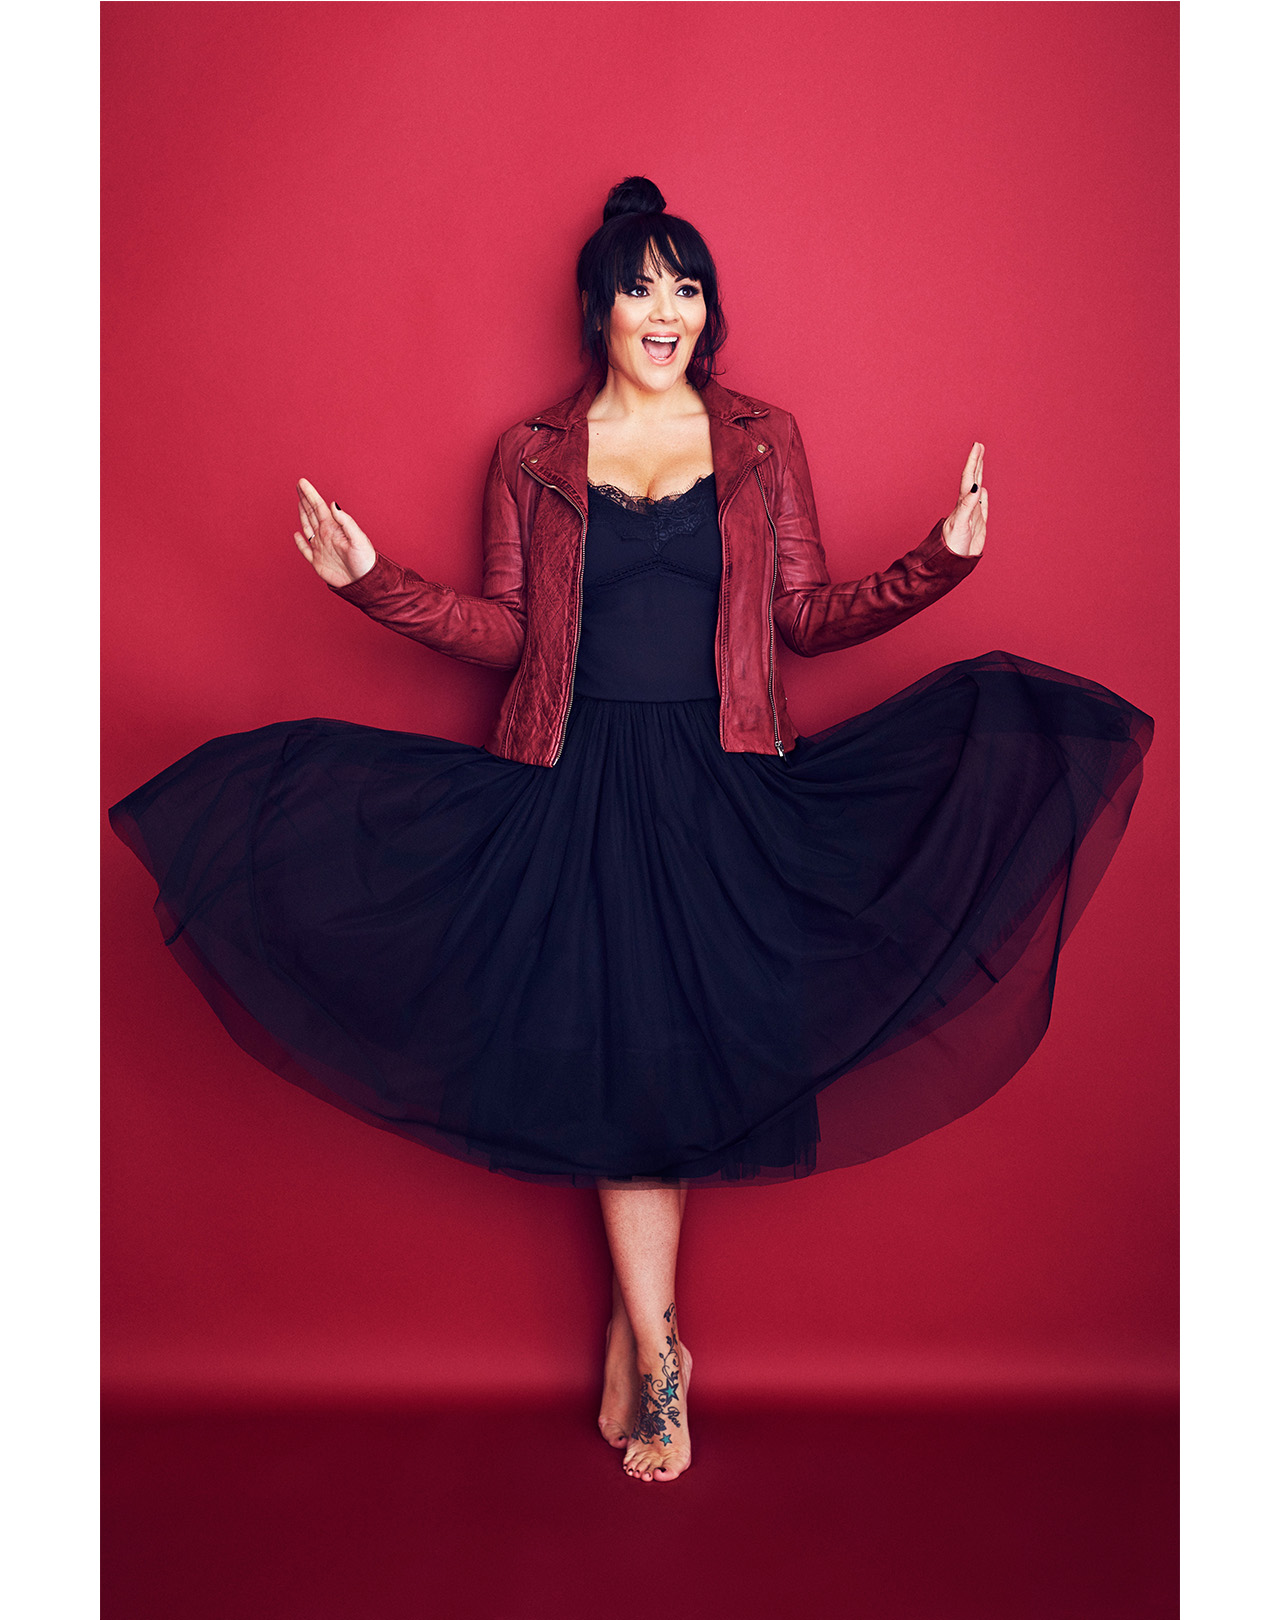 Martine McCutcheon Essentials magazine